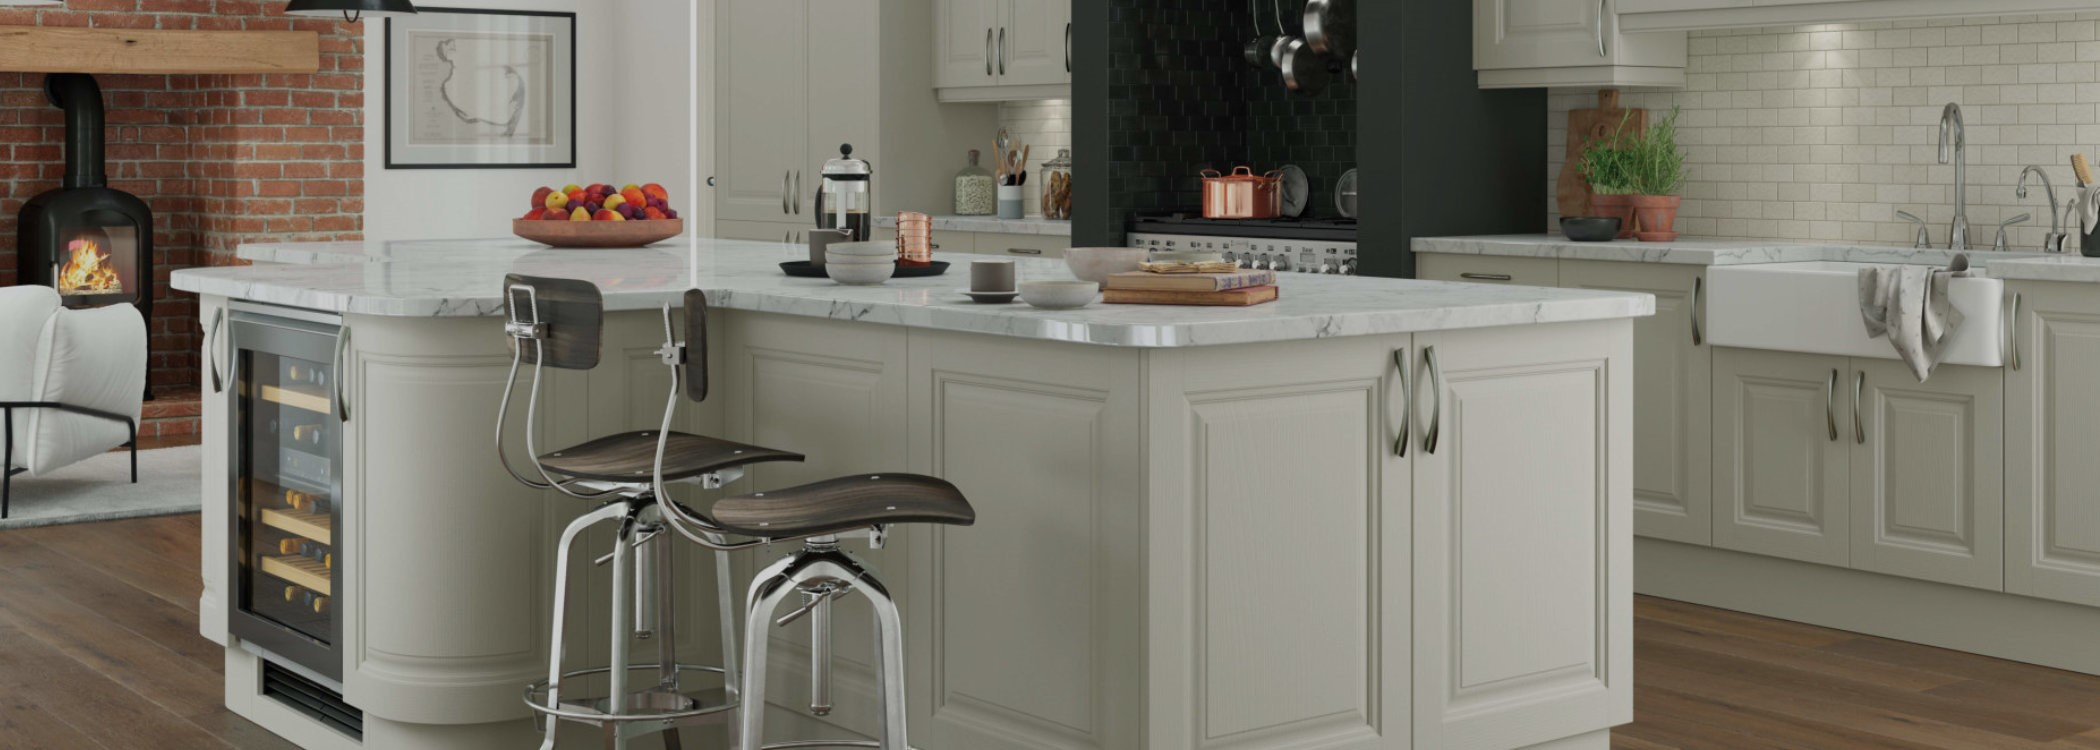 Quantum Origin Charnwood Kitchens